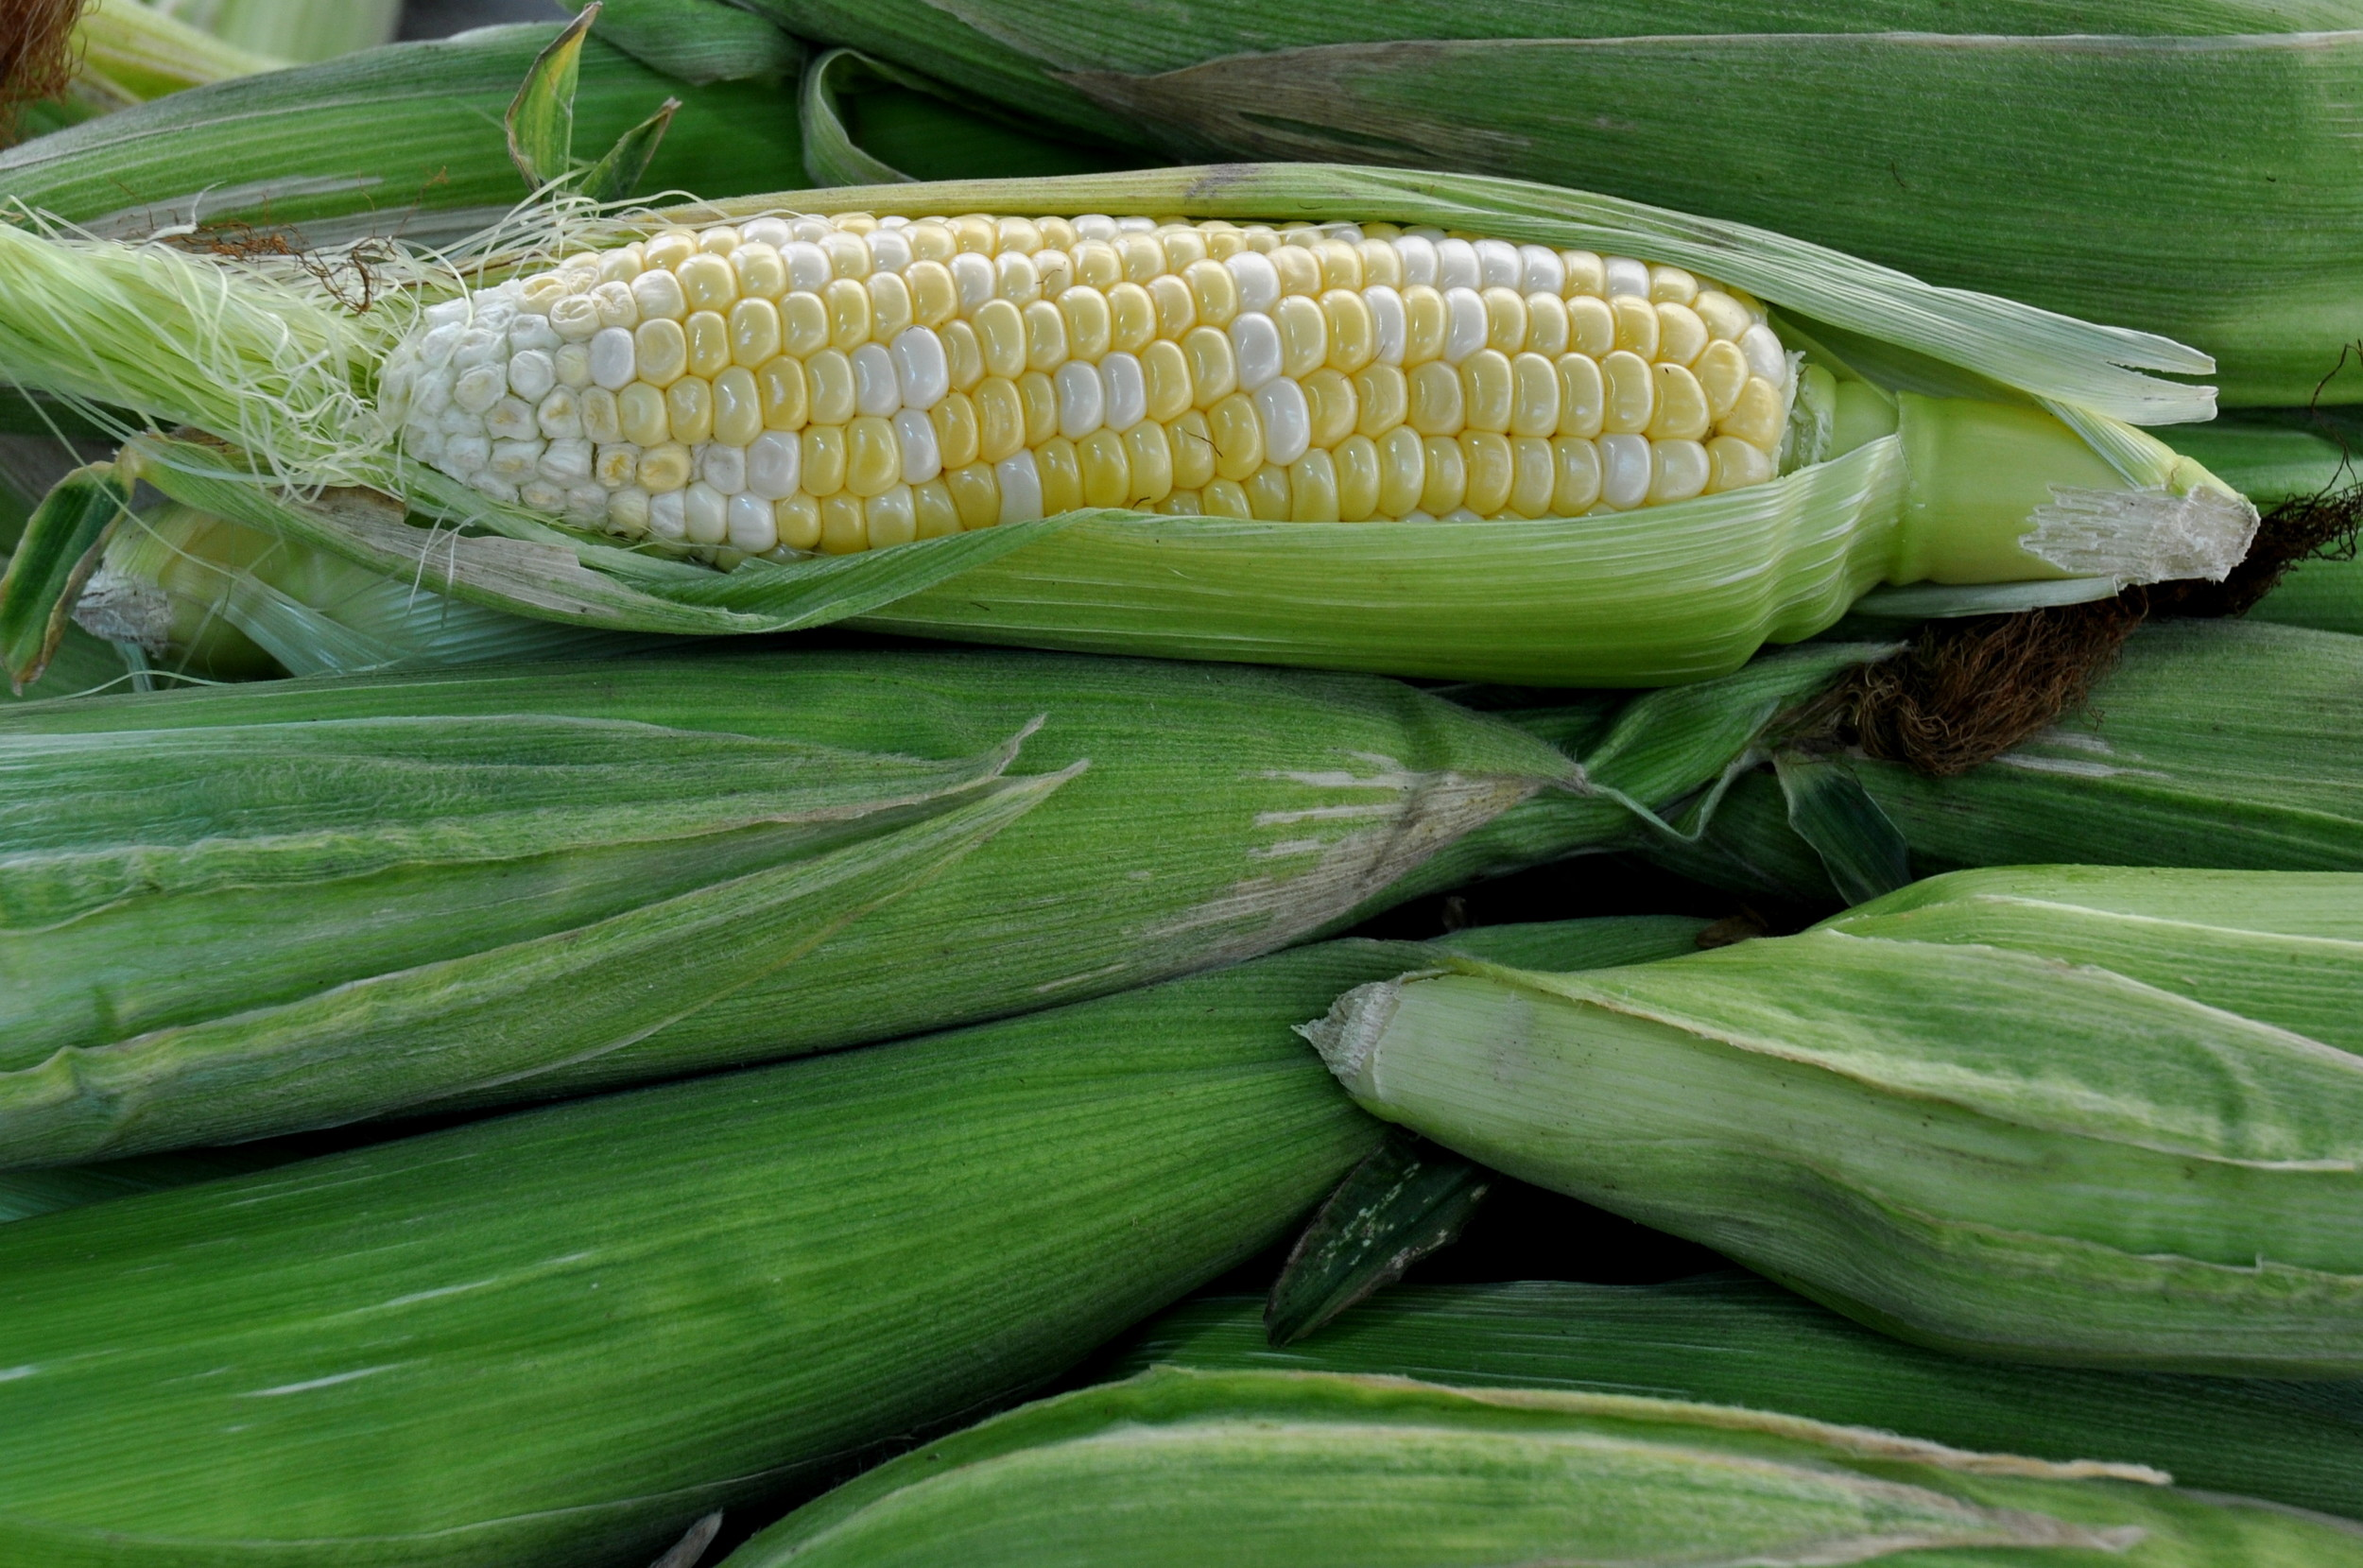 Sweet corn from Alm Hill Gardens. Photo copyright 2013 by Zachary D. Lyons.